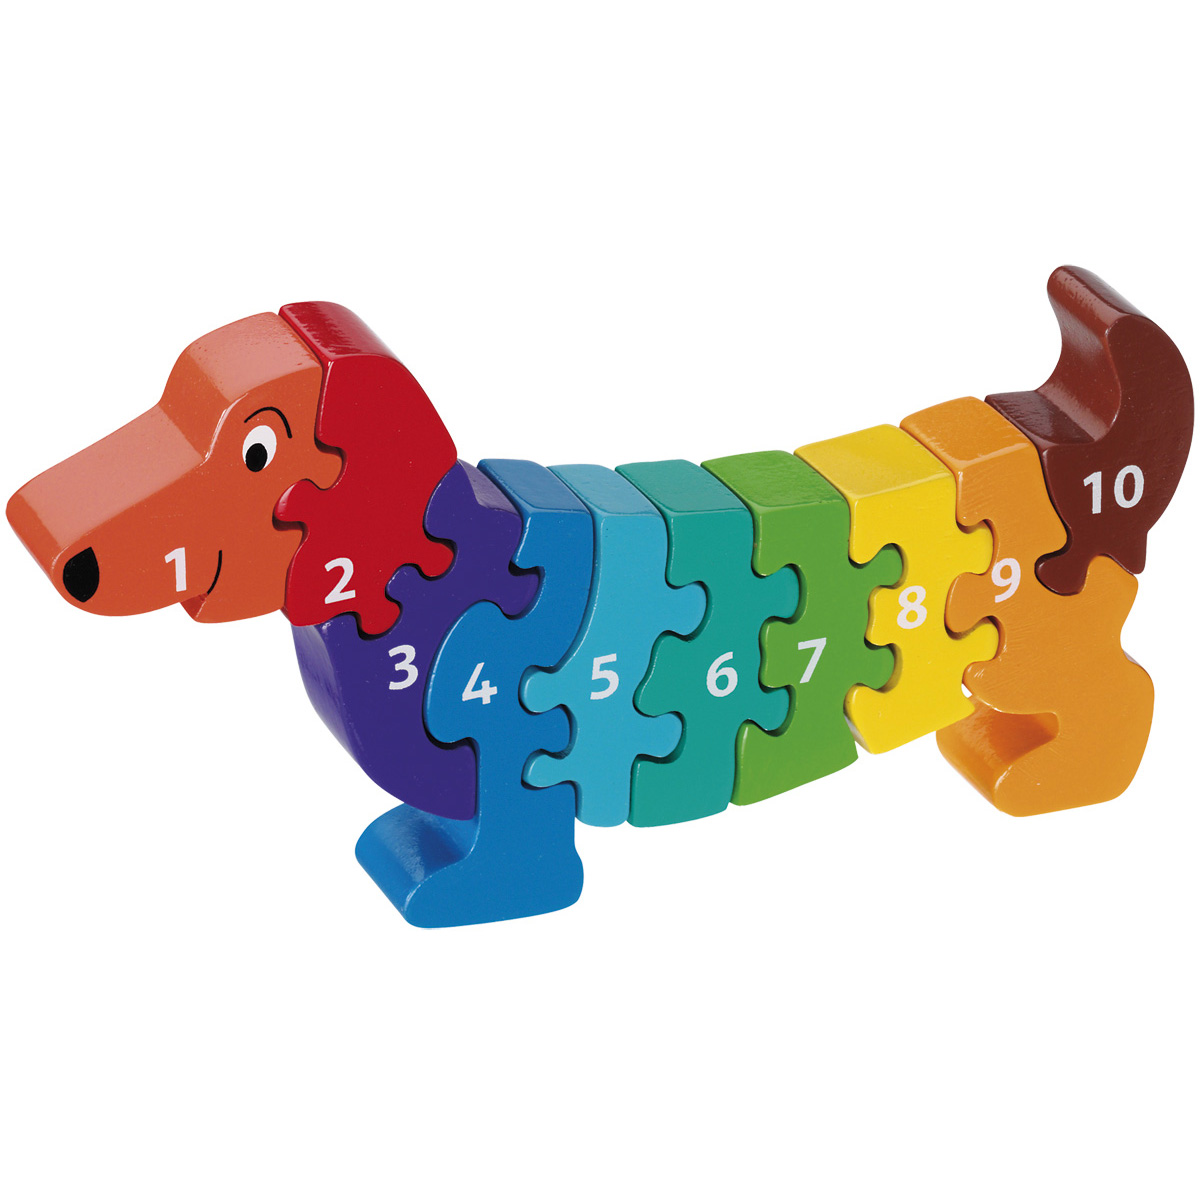 jig saw puzzle games